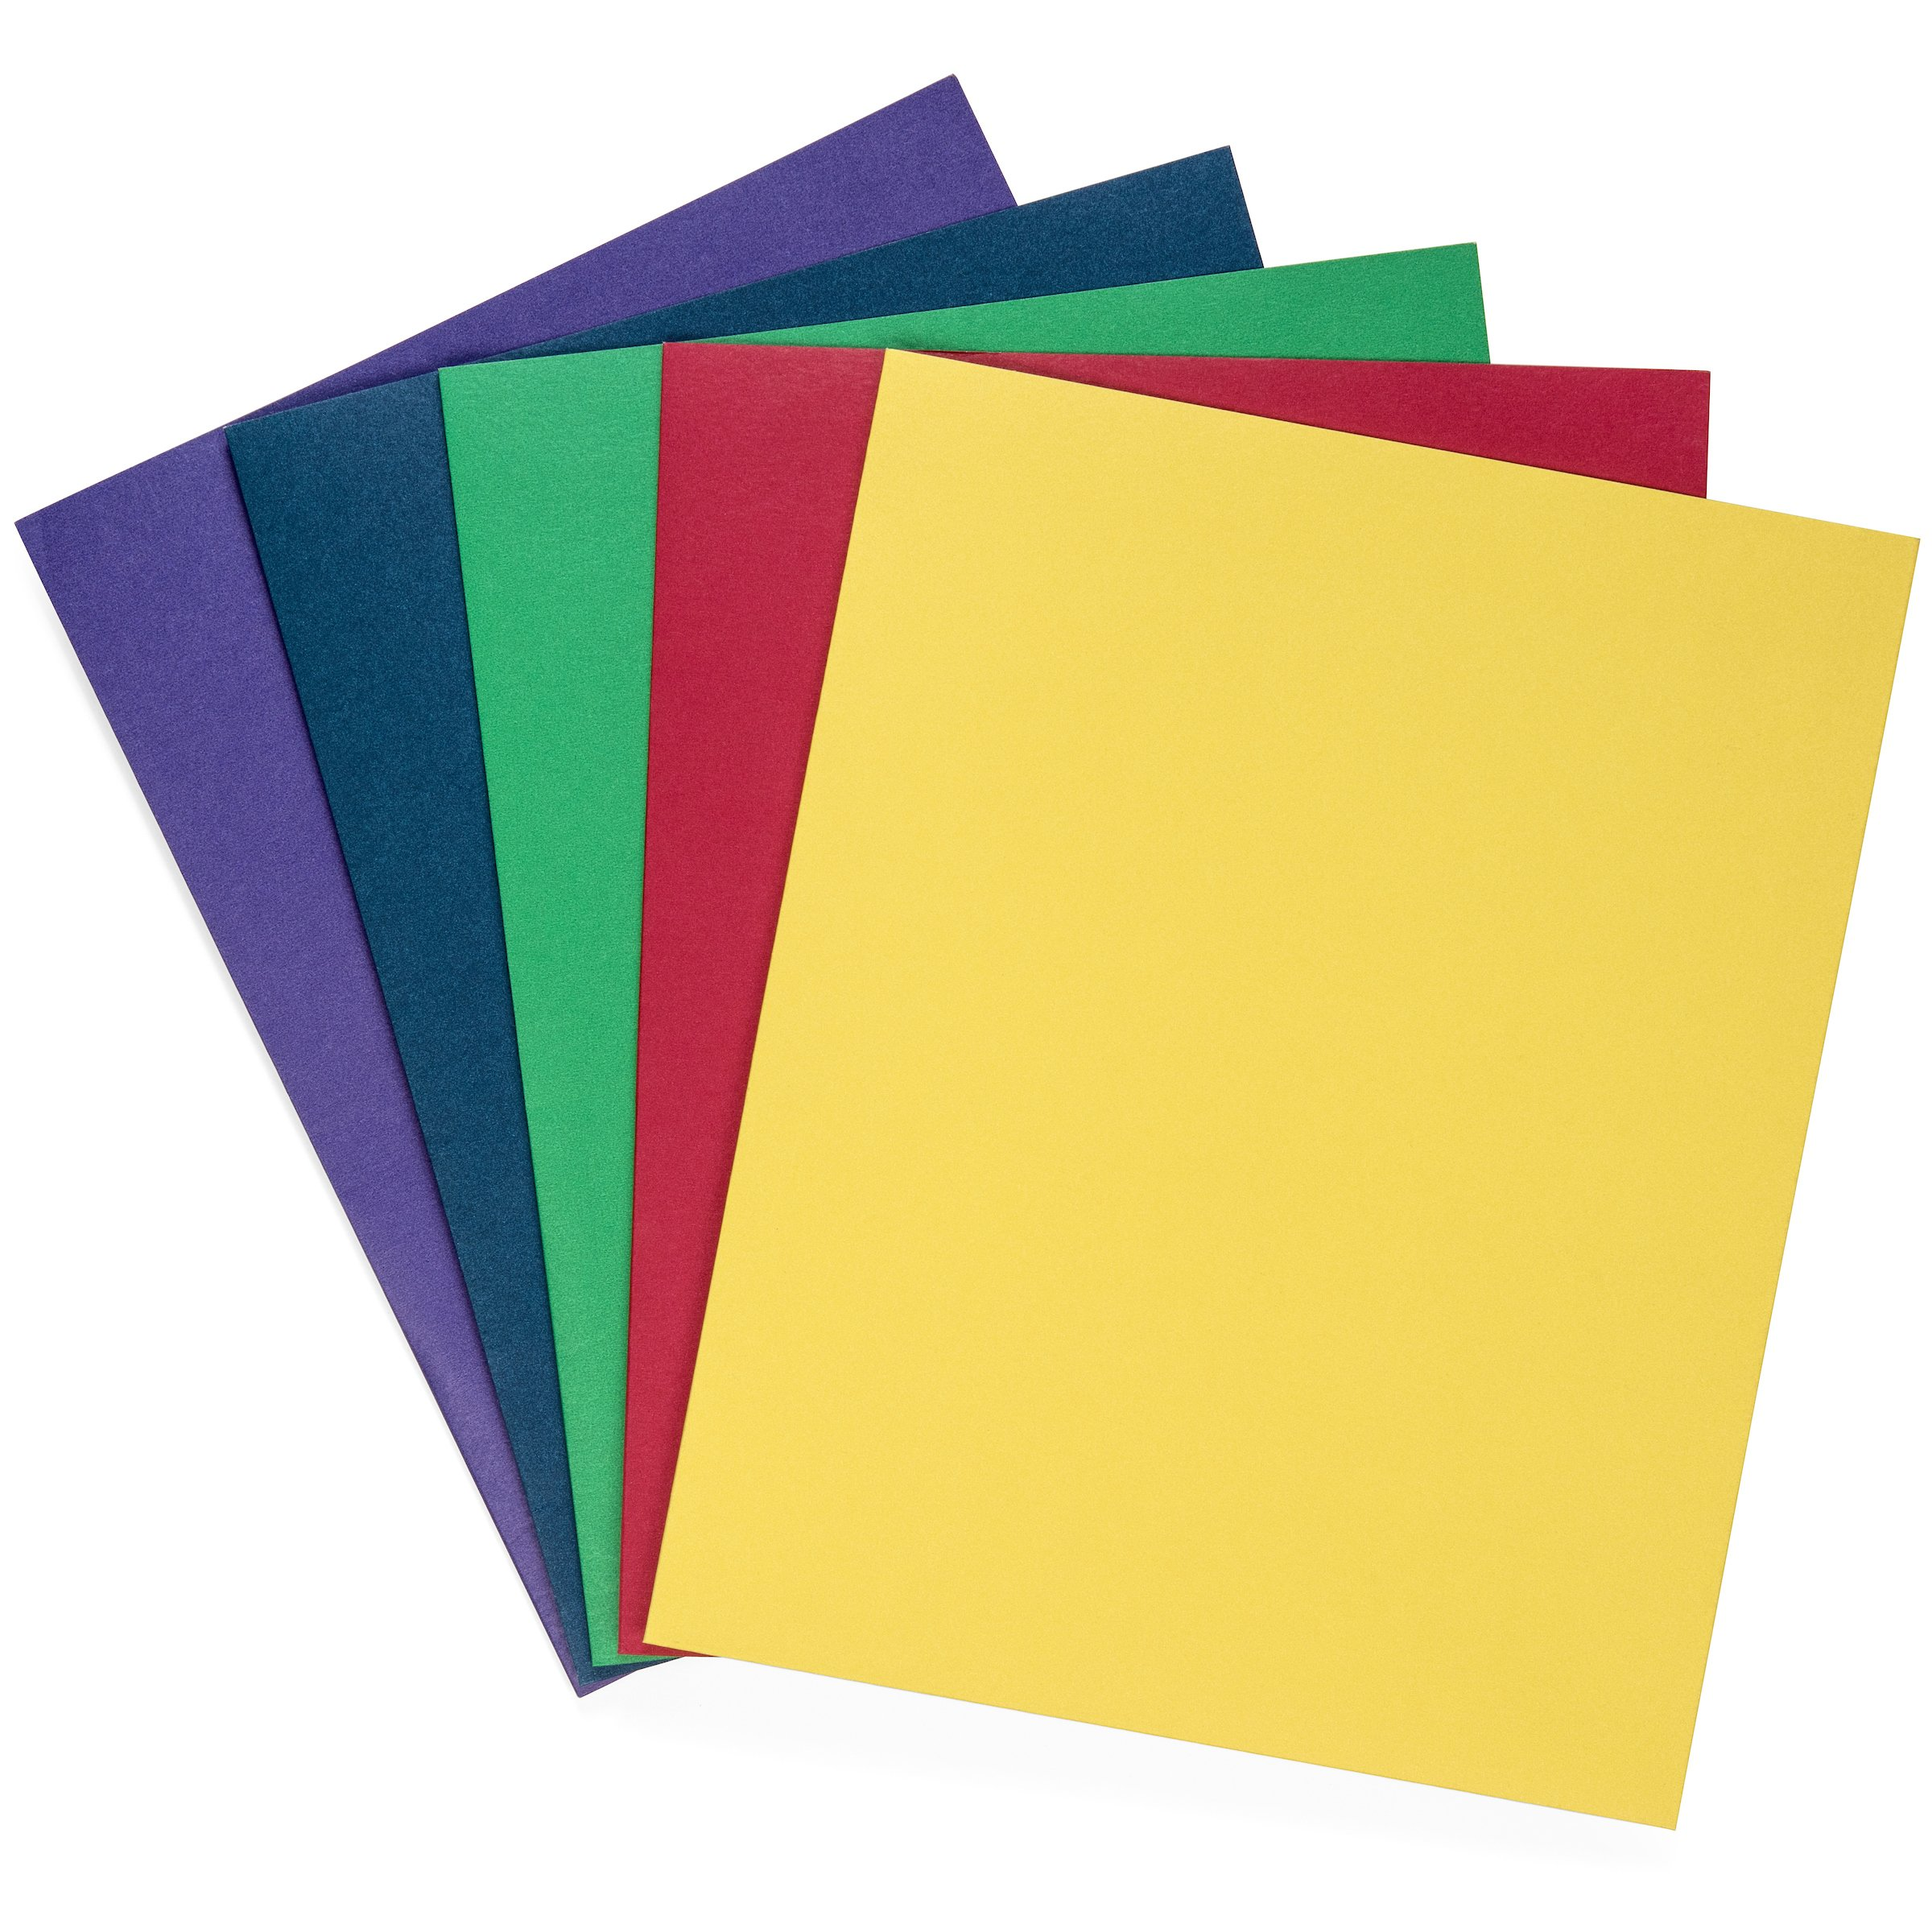 Blue Summit Supplies 100 Two Pocket Folders, Designed for Office and Classroom Use, Assorted 5 Colors, 100 Pack Colored 2 Pocket Folders by Blue Summit Supplies